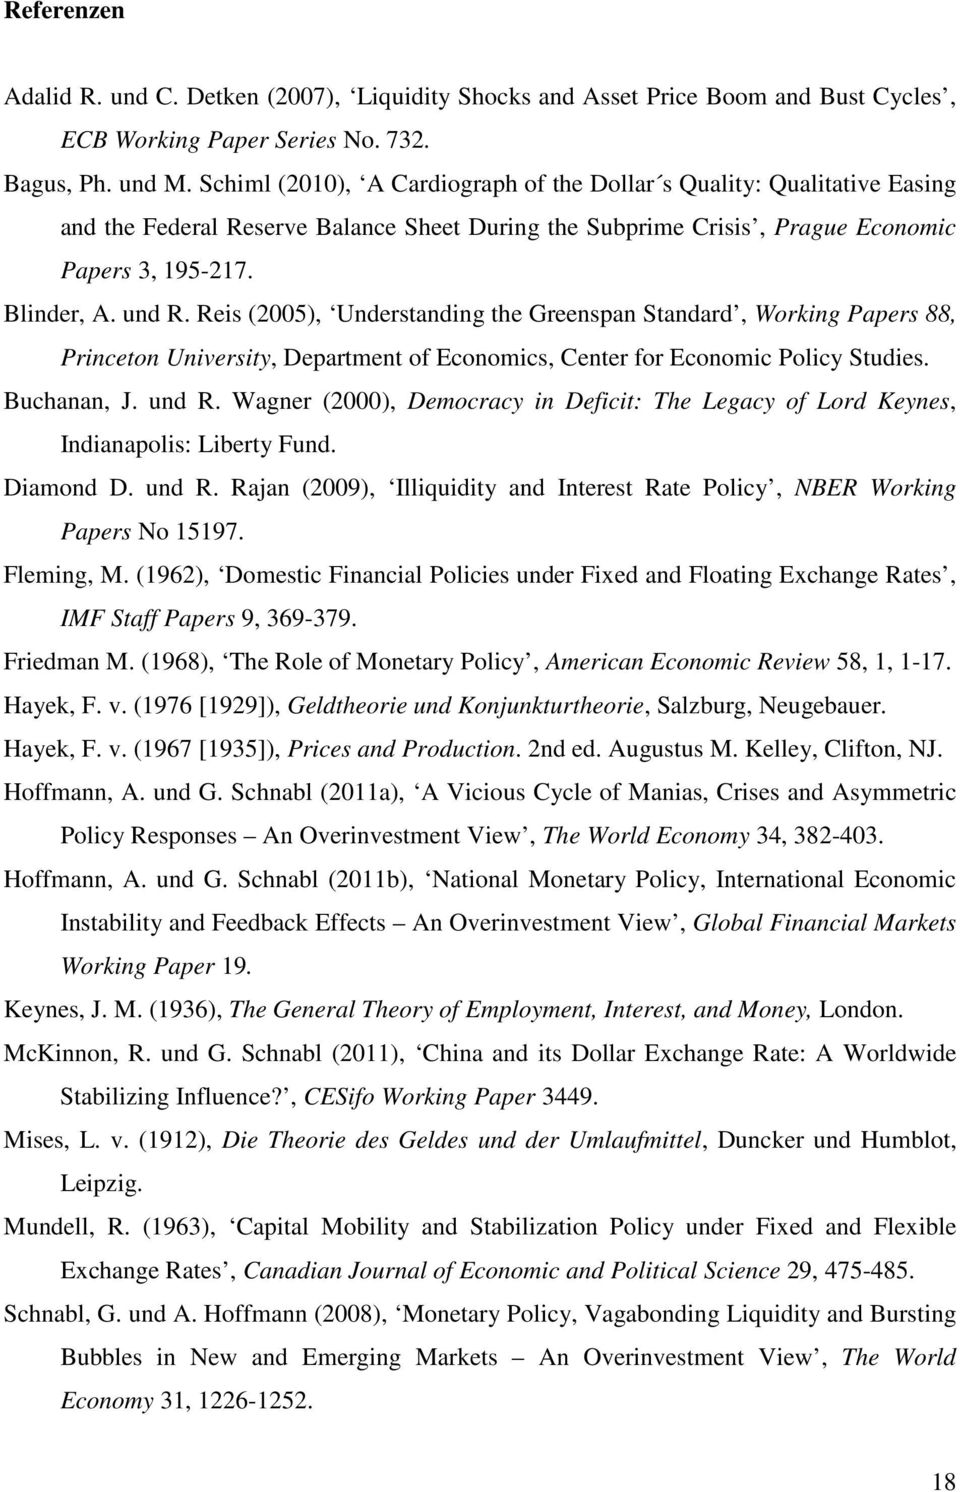 Res (005), Understandng the Greenspan Standard, Workng Papers 88, Prnceton Unversty, Department of Economcs, Center for Economc Polcy Studes. Buchanan, J. und R.